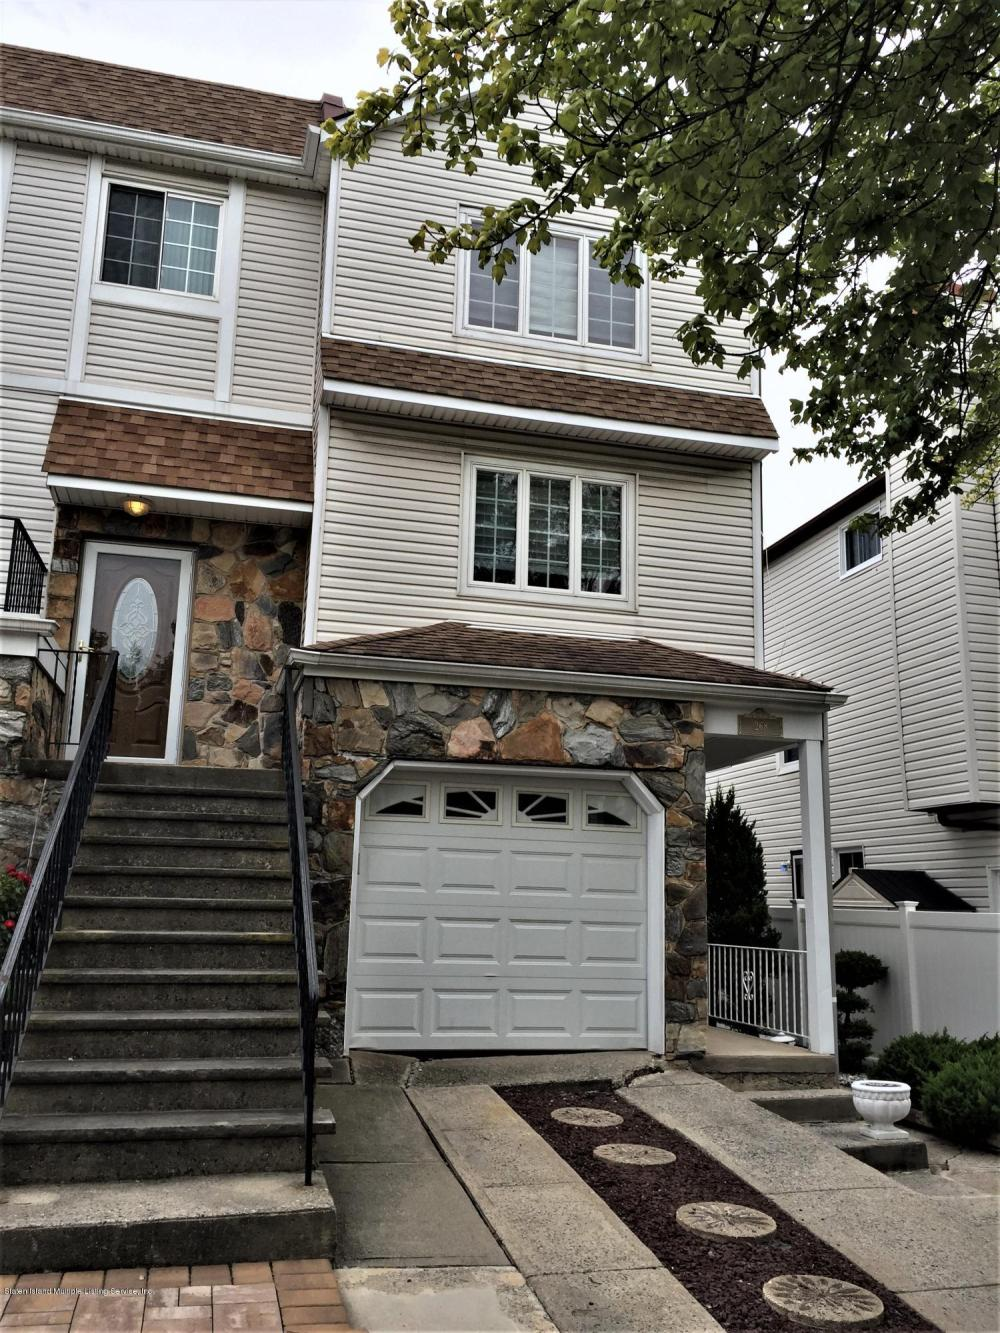 268 Monahan Avenue,Staten Island,New York,10314,United States,3 Bedrooms Bedrooms,7 Rooms Rooms,3 BathroomsBathrooms,Residential,Monahan,1124113